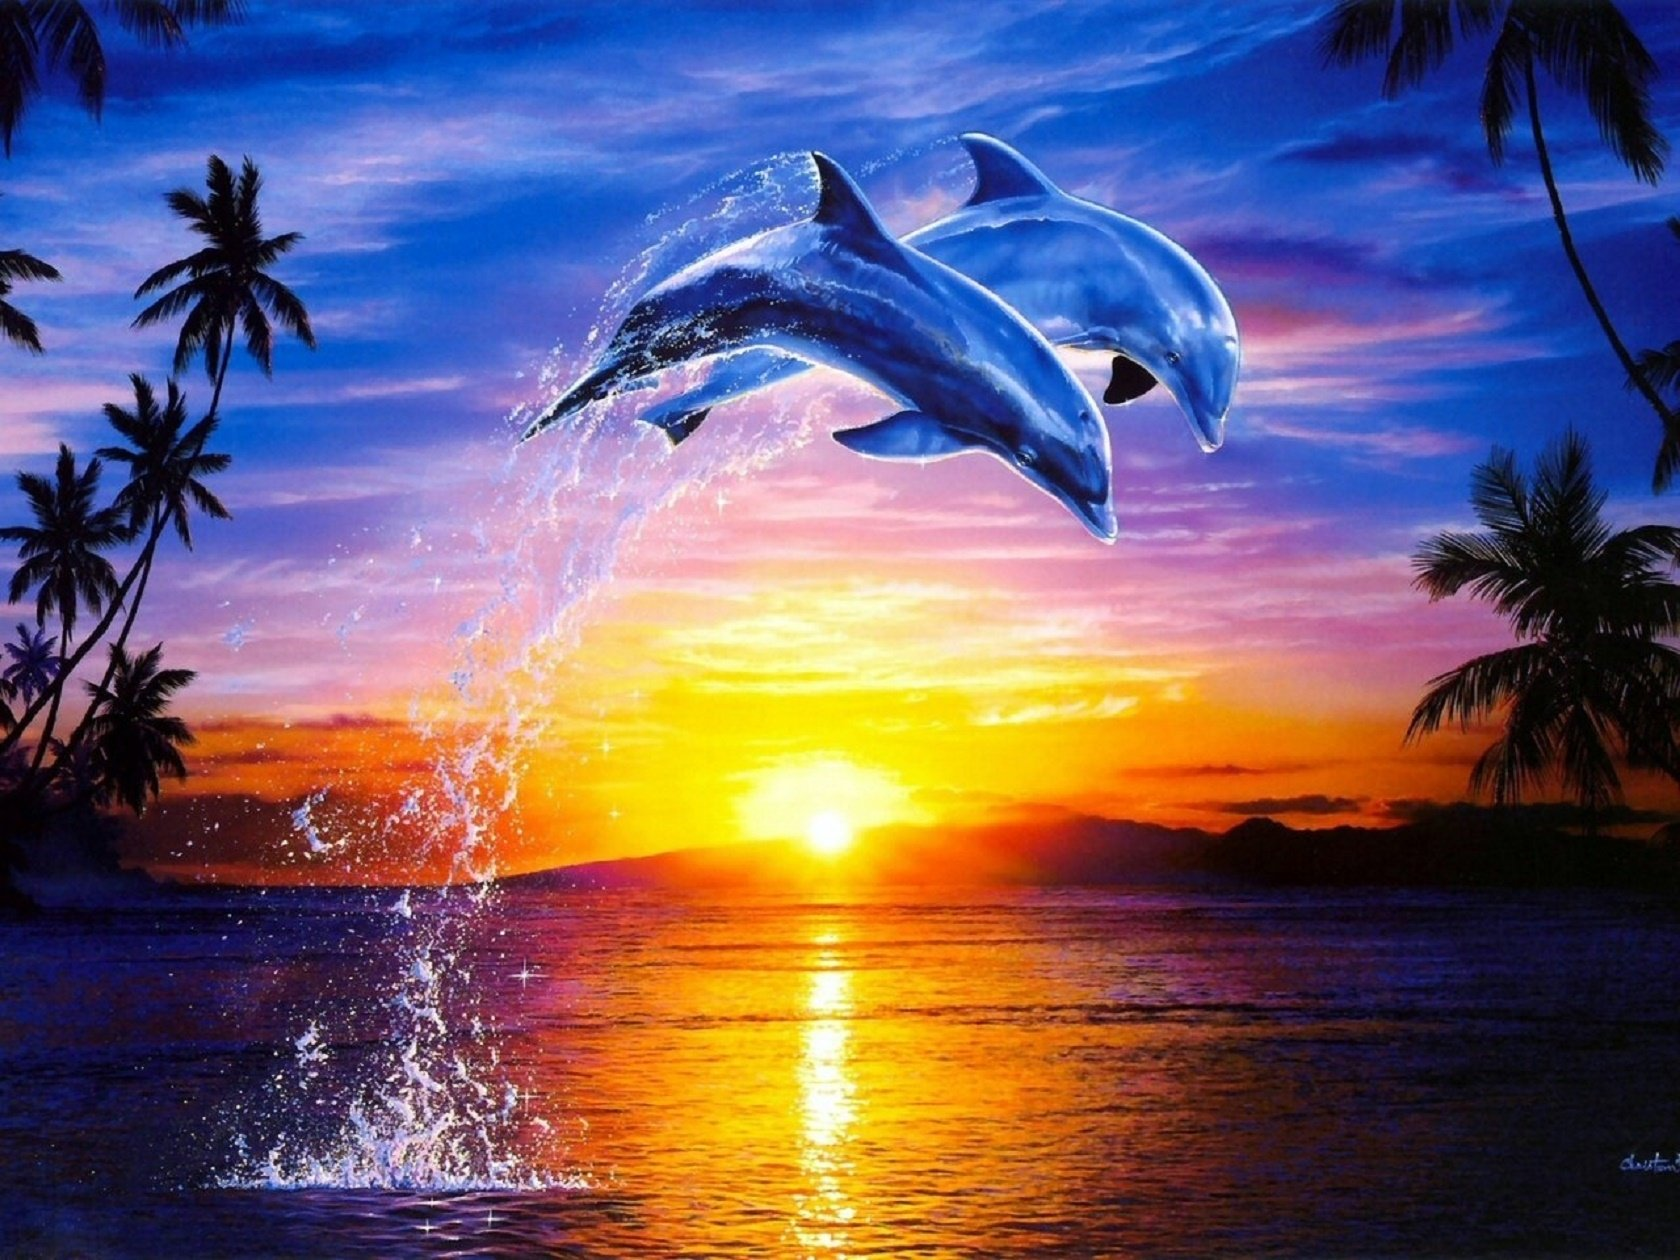 Wallpapers ID:679673